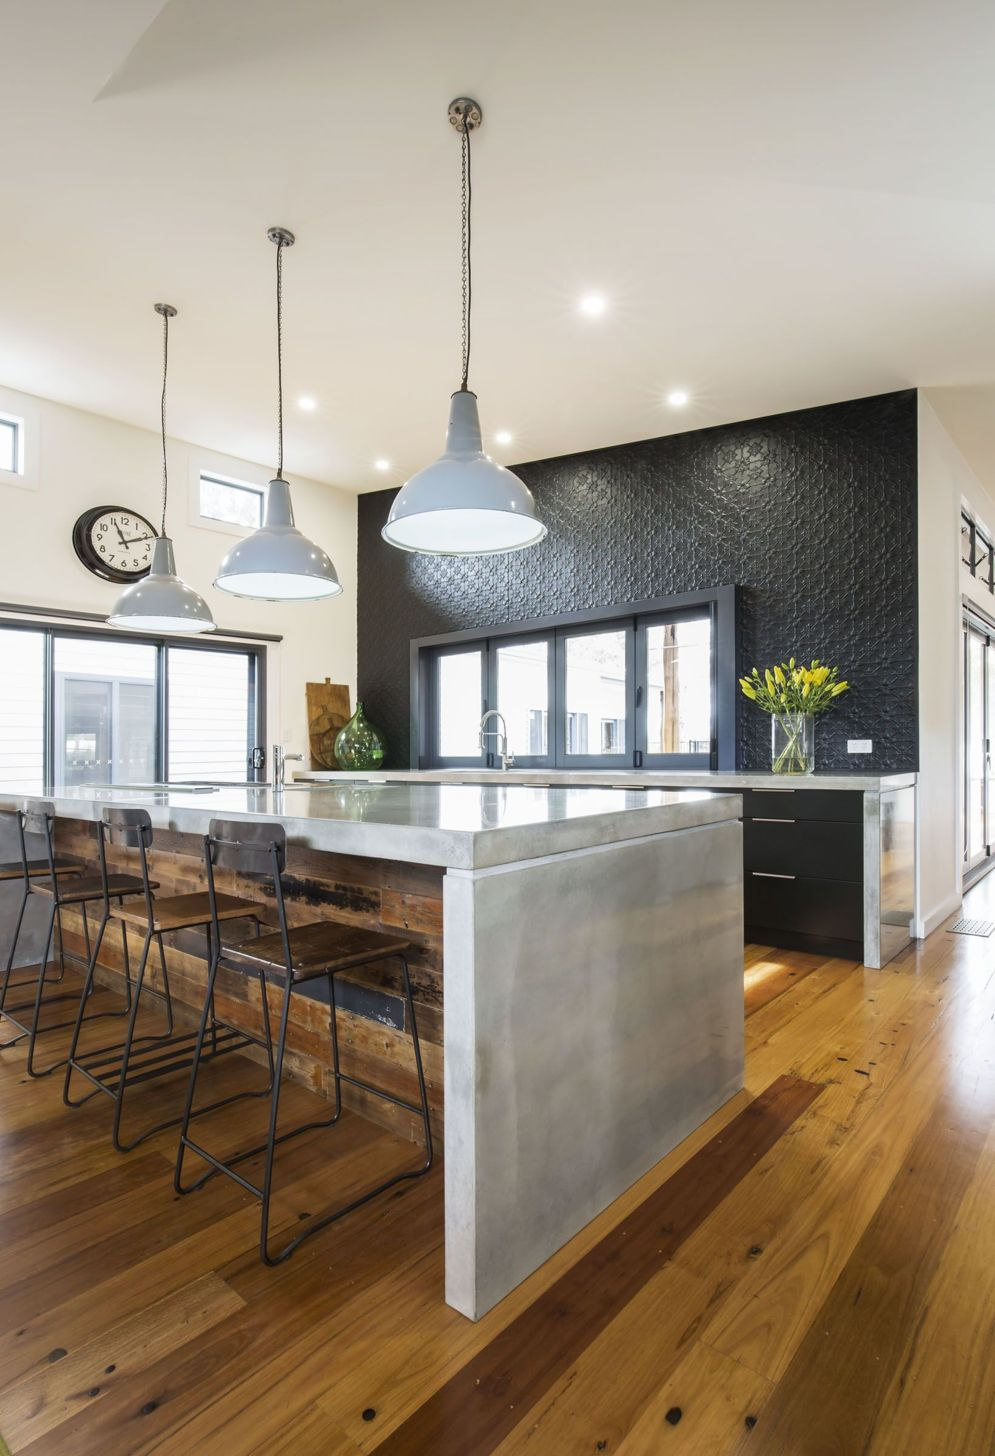 Modern kitchen updates using efficient concrete benchtops to show sturdier interior display Image 35